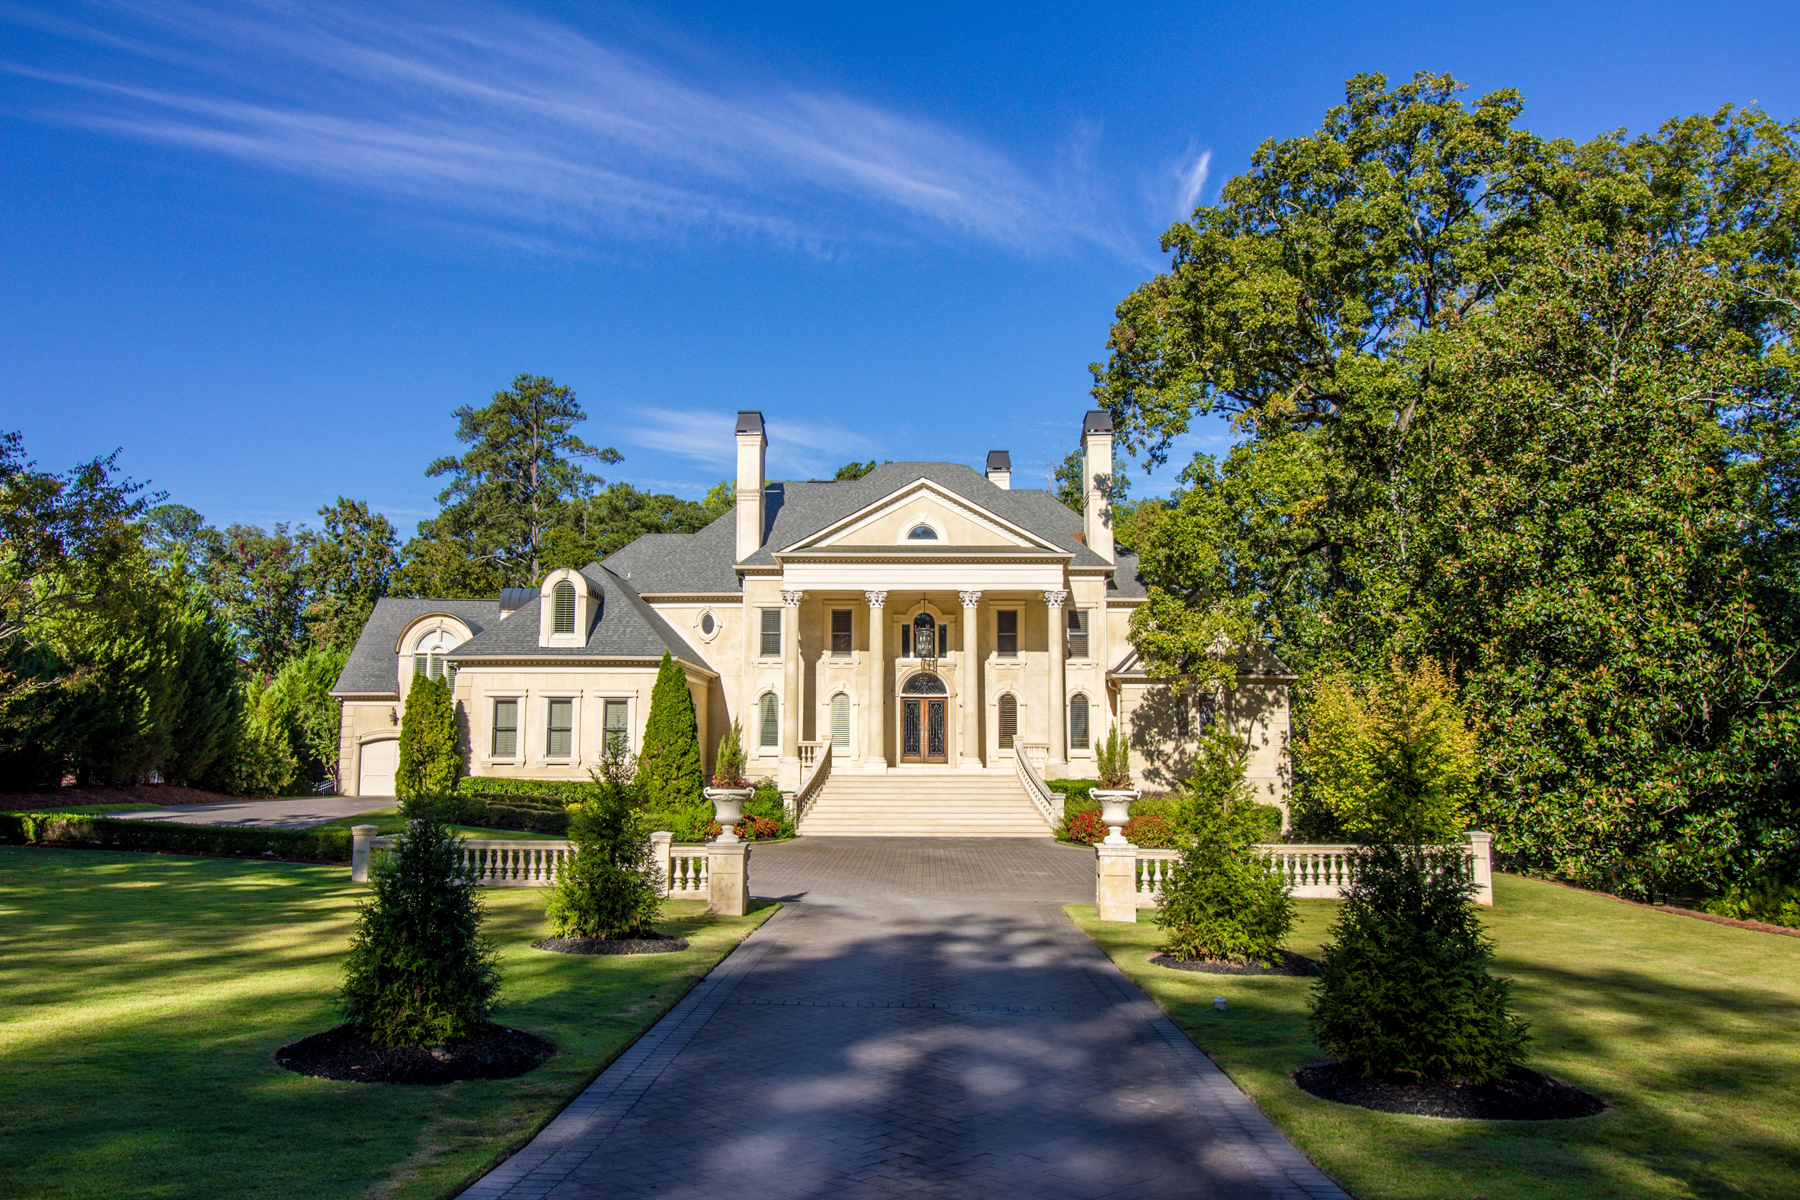 단독 가정 주택 용 매매 에 Incomparable Neoclassical Estate In The Heart Of Buckhead 1495 Mount Paran Road NW Buckhead, Atlanta, 조지아, 30327 미국